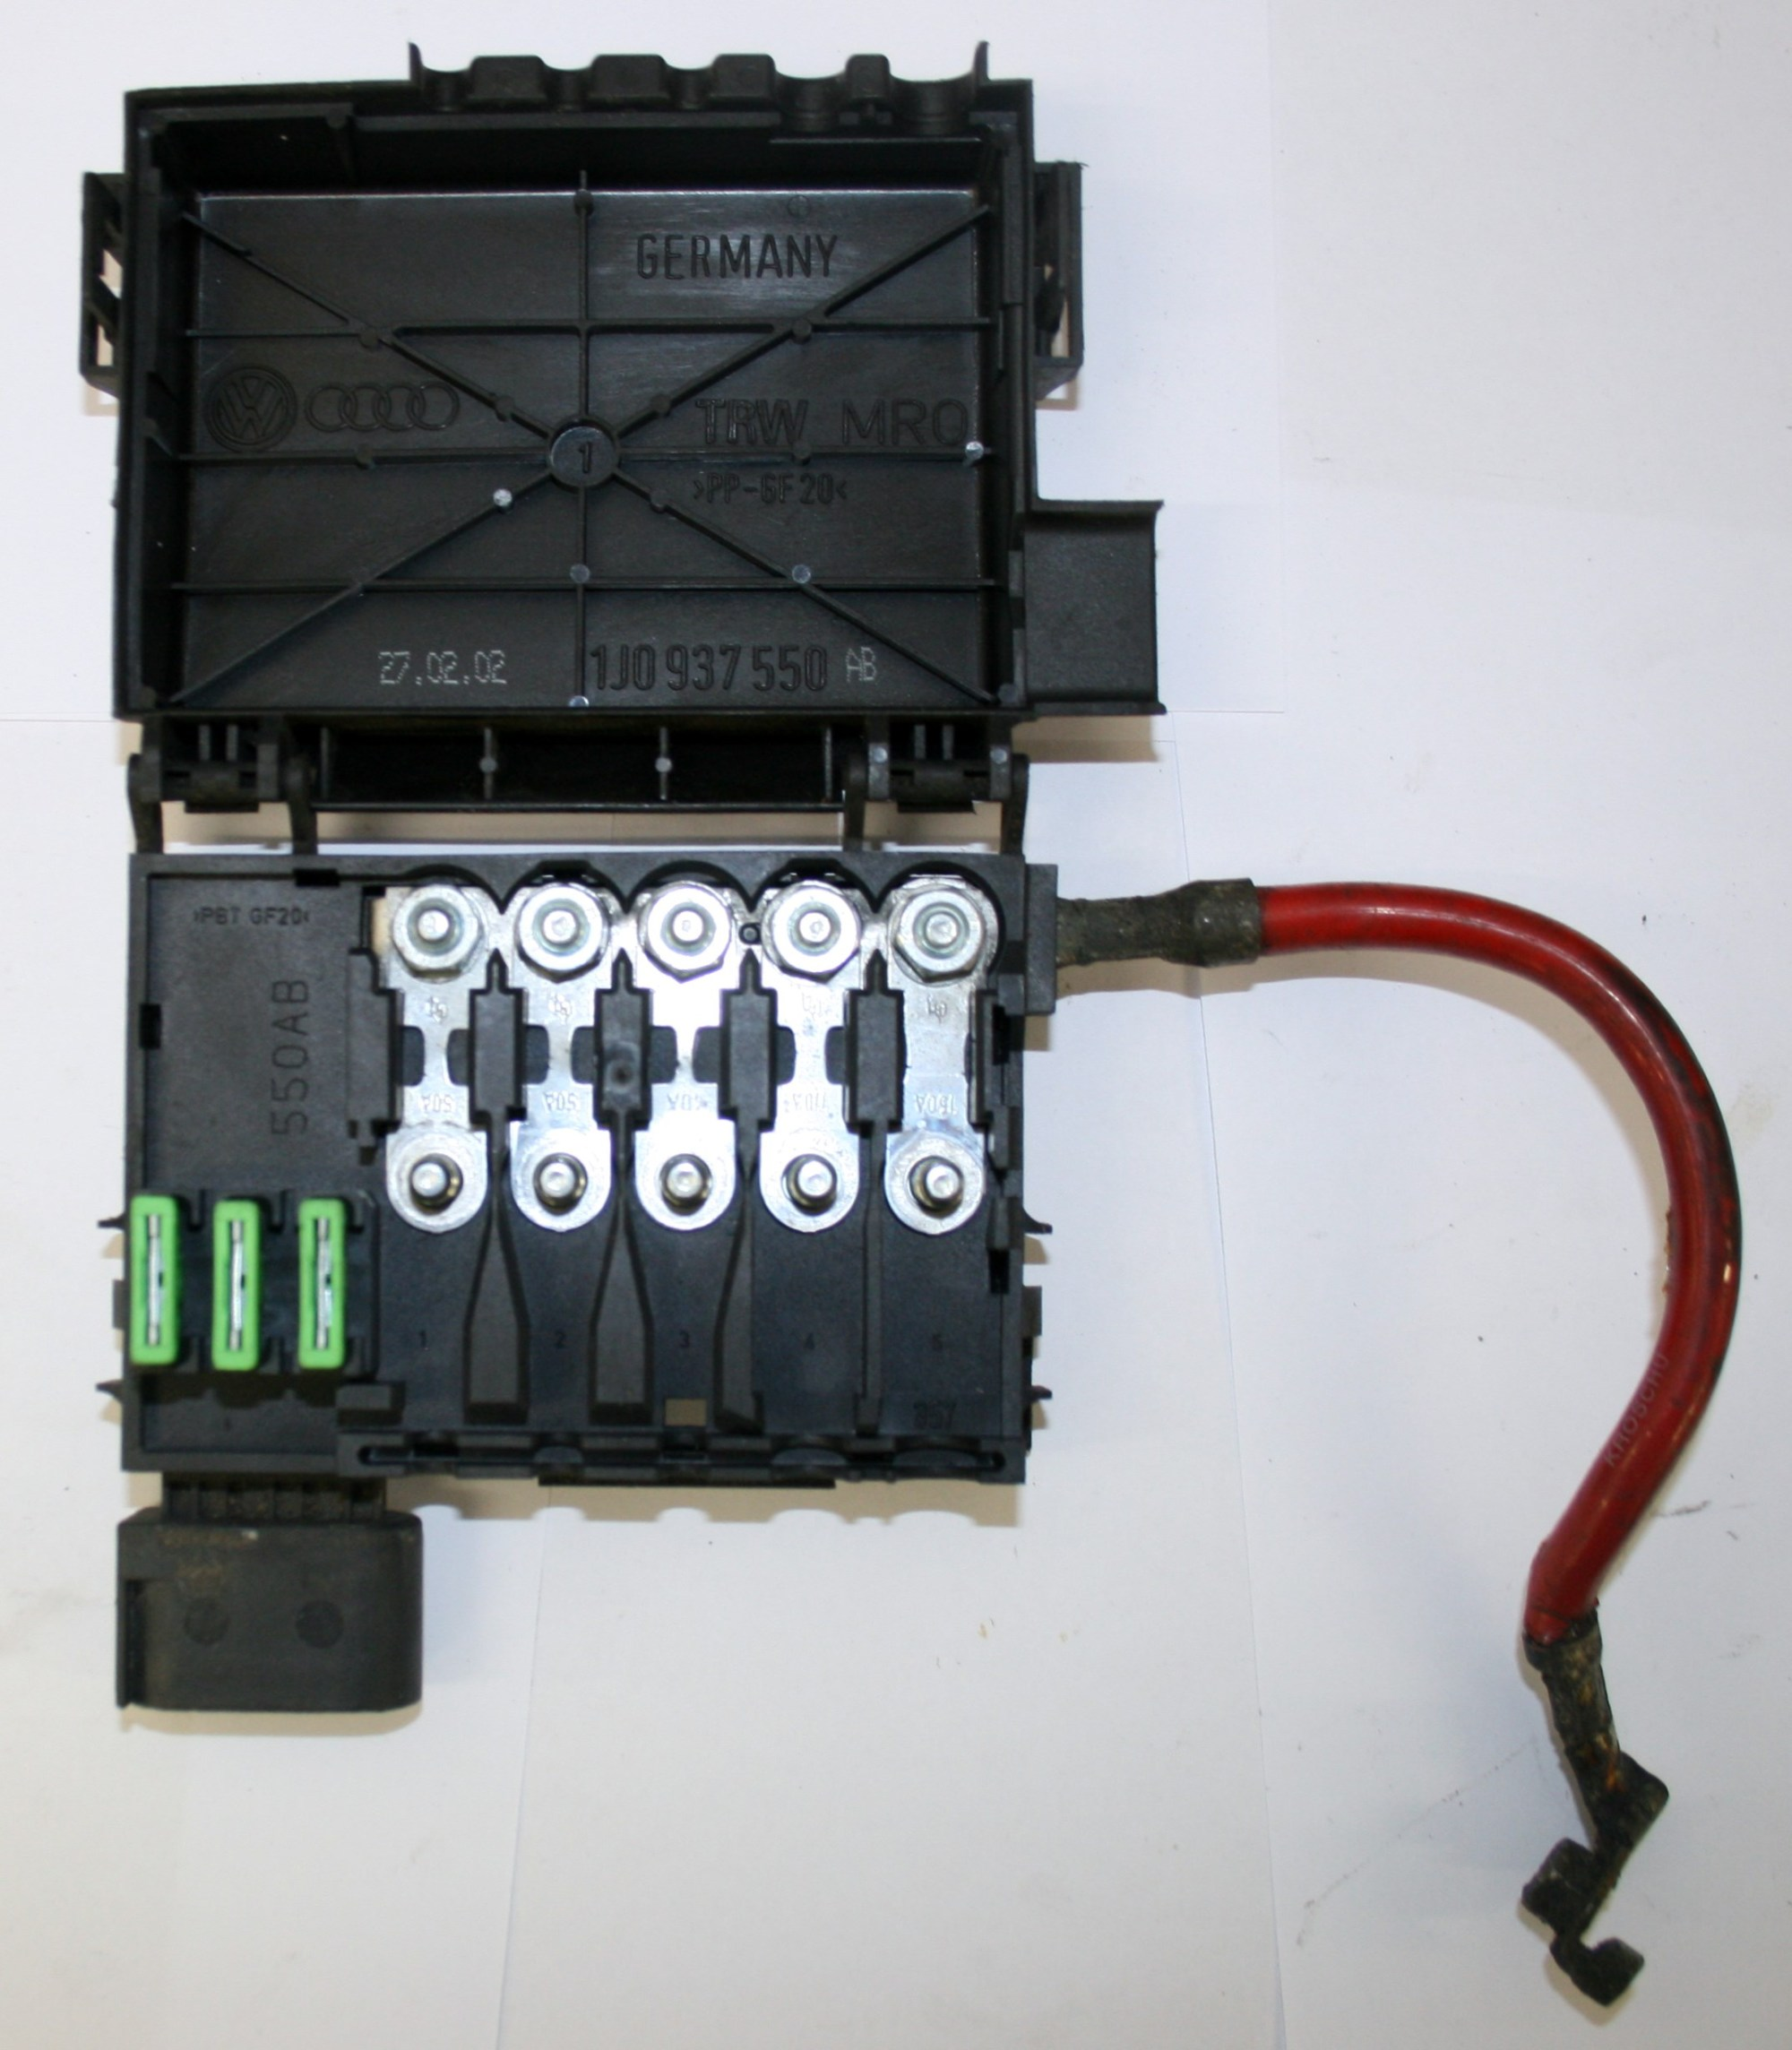 hight resolution of 2004 golf fuse box cable wiring diagram centre 2004 golf fuse box cable